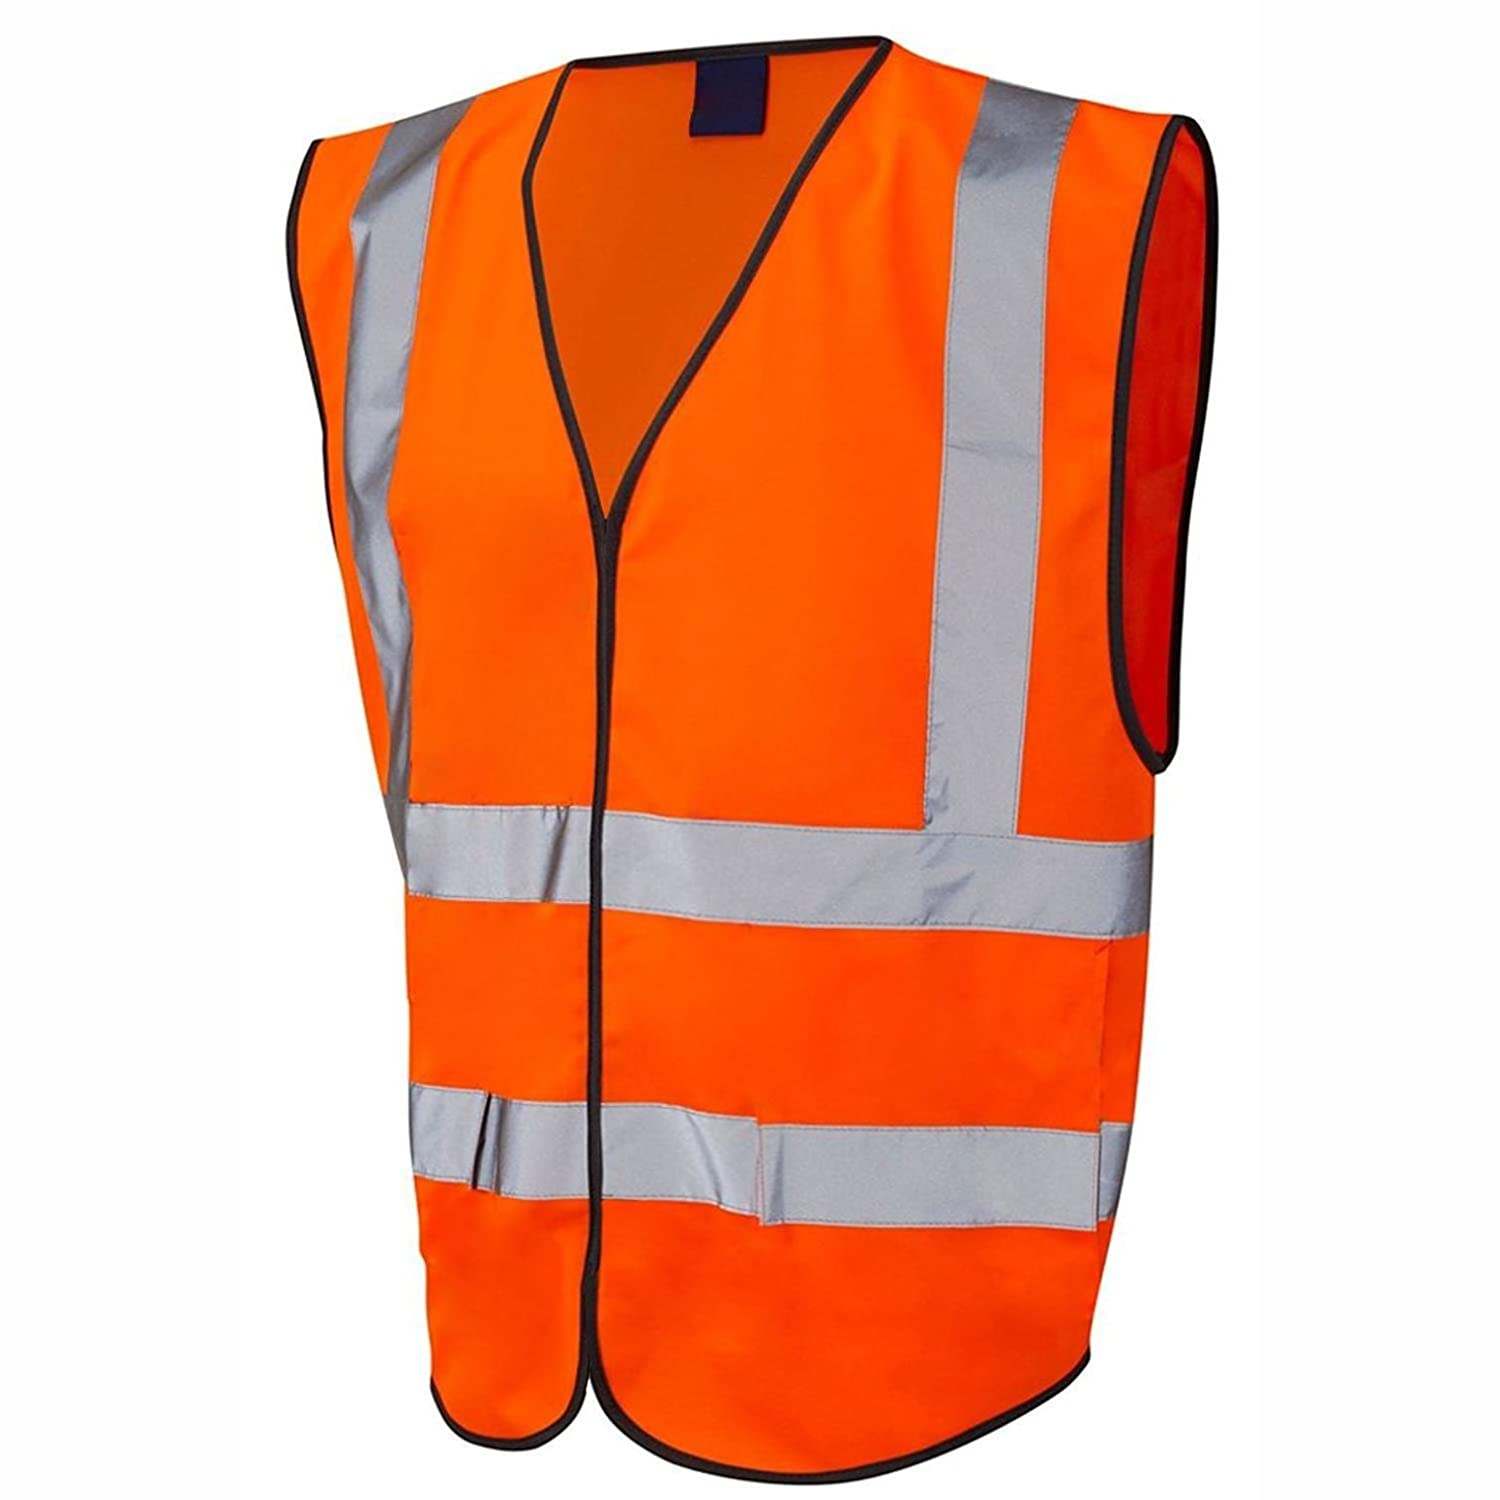 Oypla Orange Hi-Vis Safety Vest Jacket (Large) 3355OYP